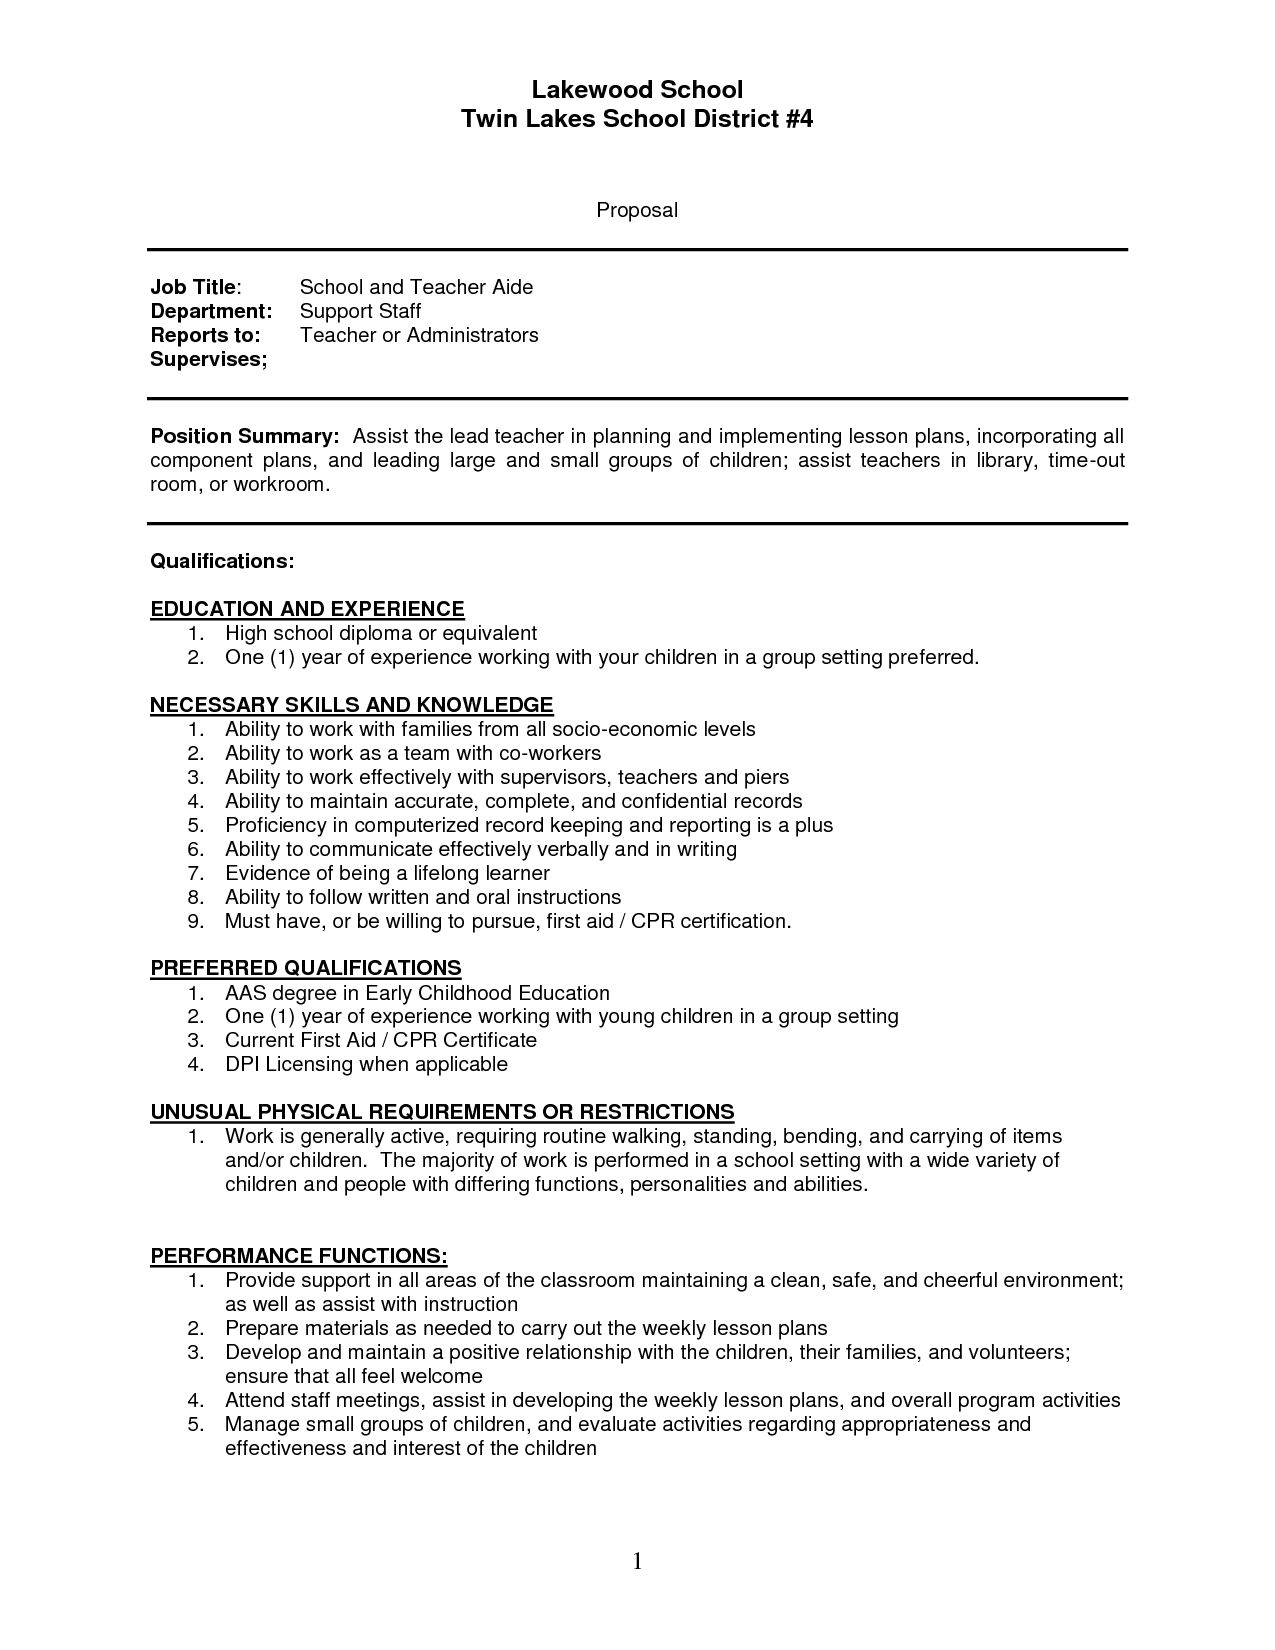 sample resume teachers aide assistant cover letter teacher sap ...